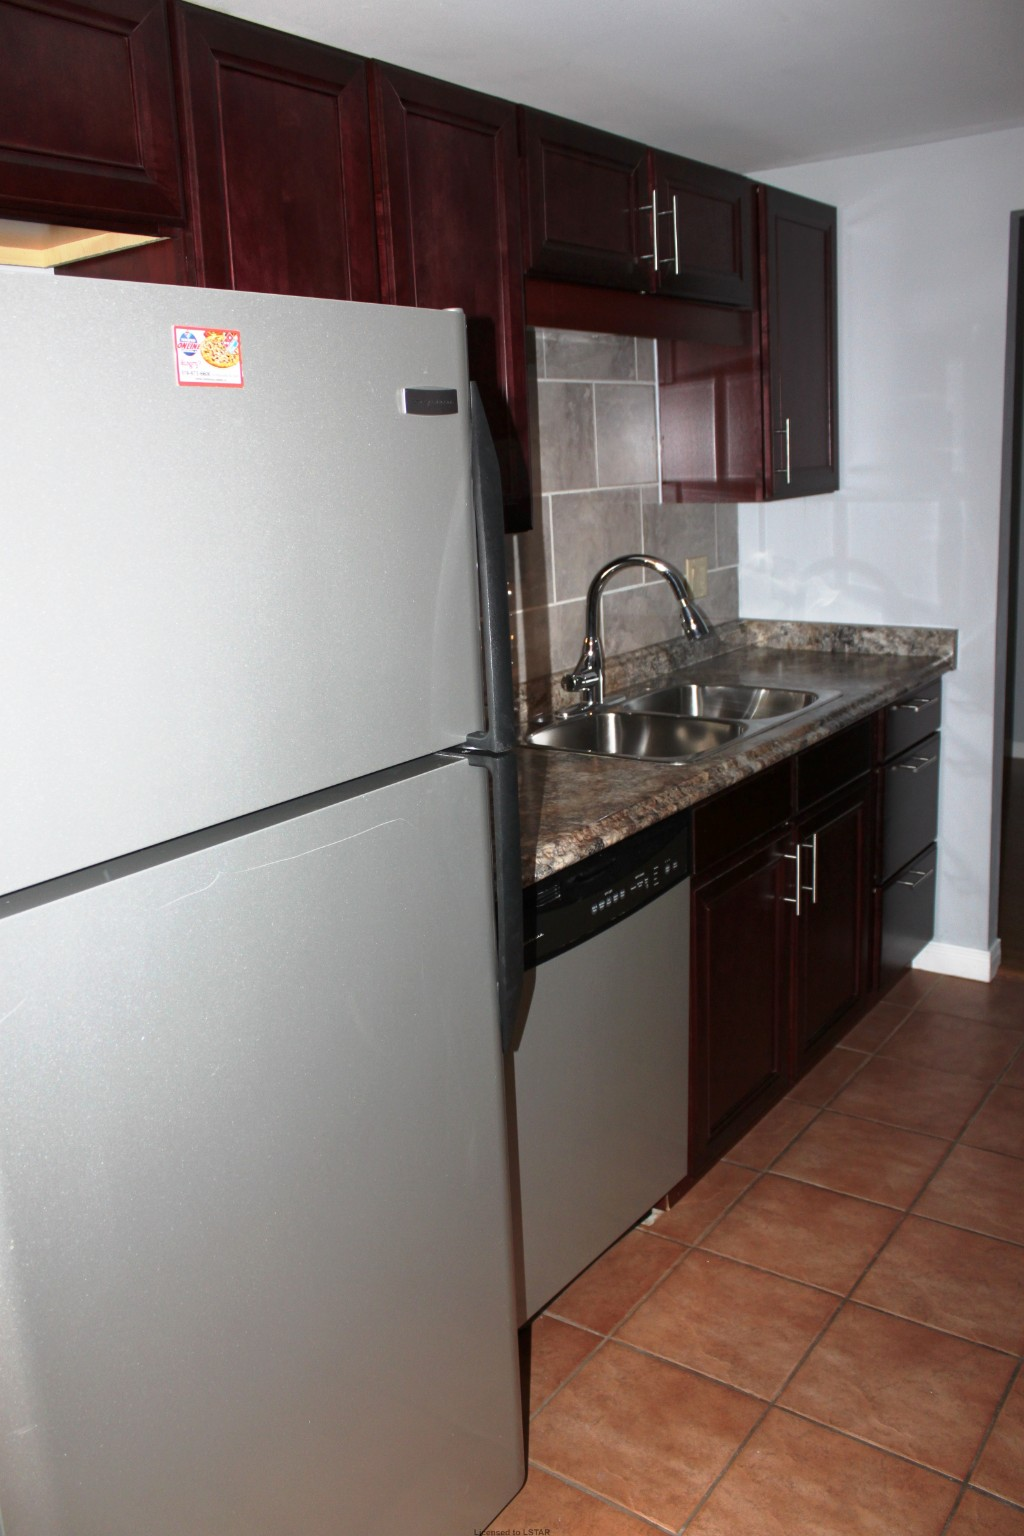 Kitchen Small Appliances London Ontario - 155 kent st 1103 london ontario